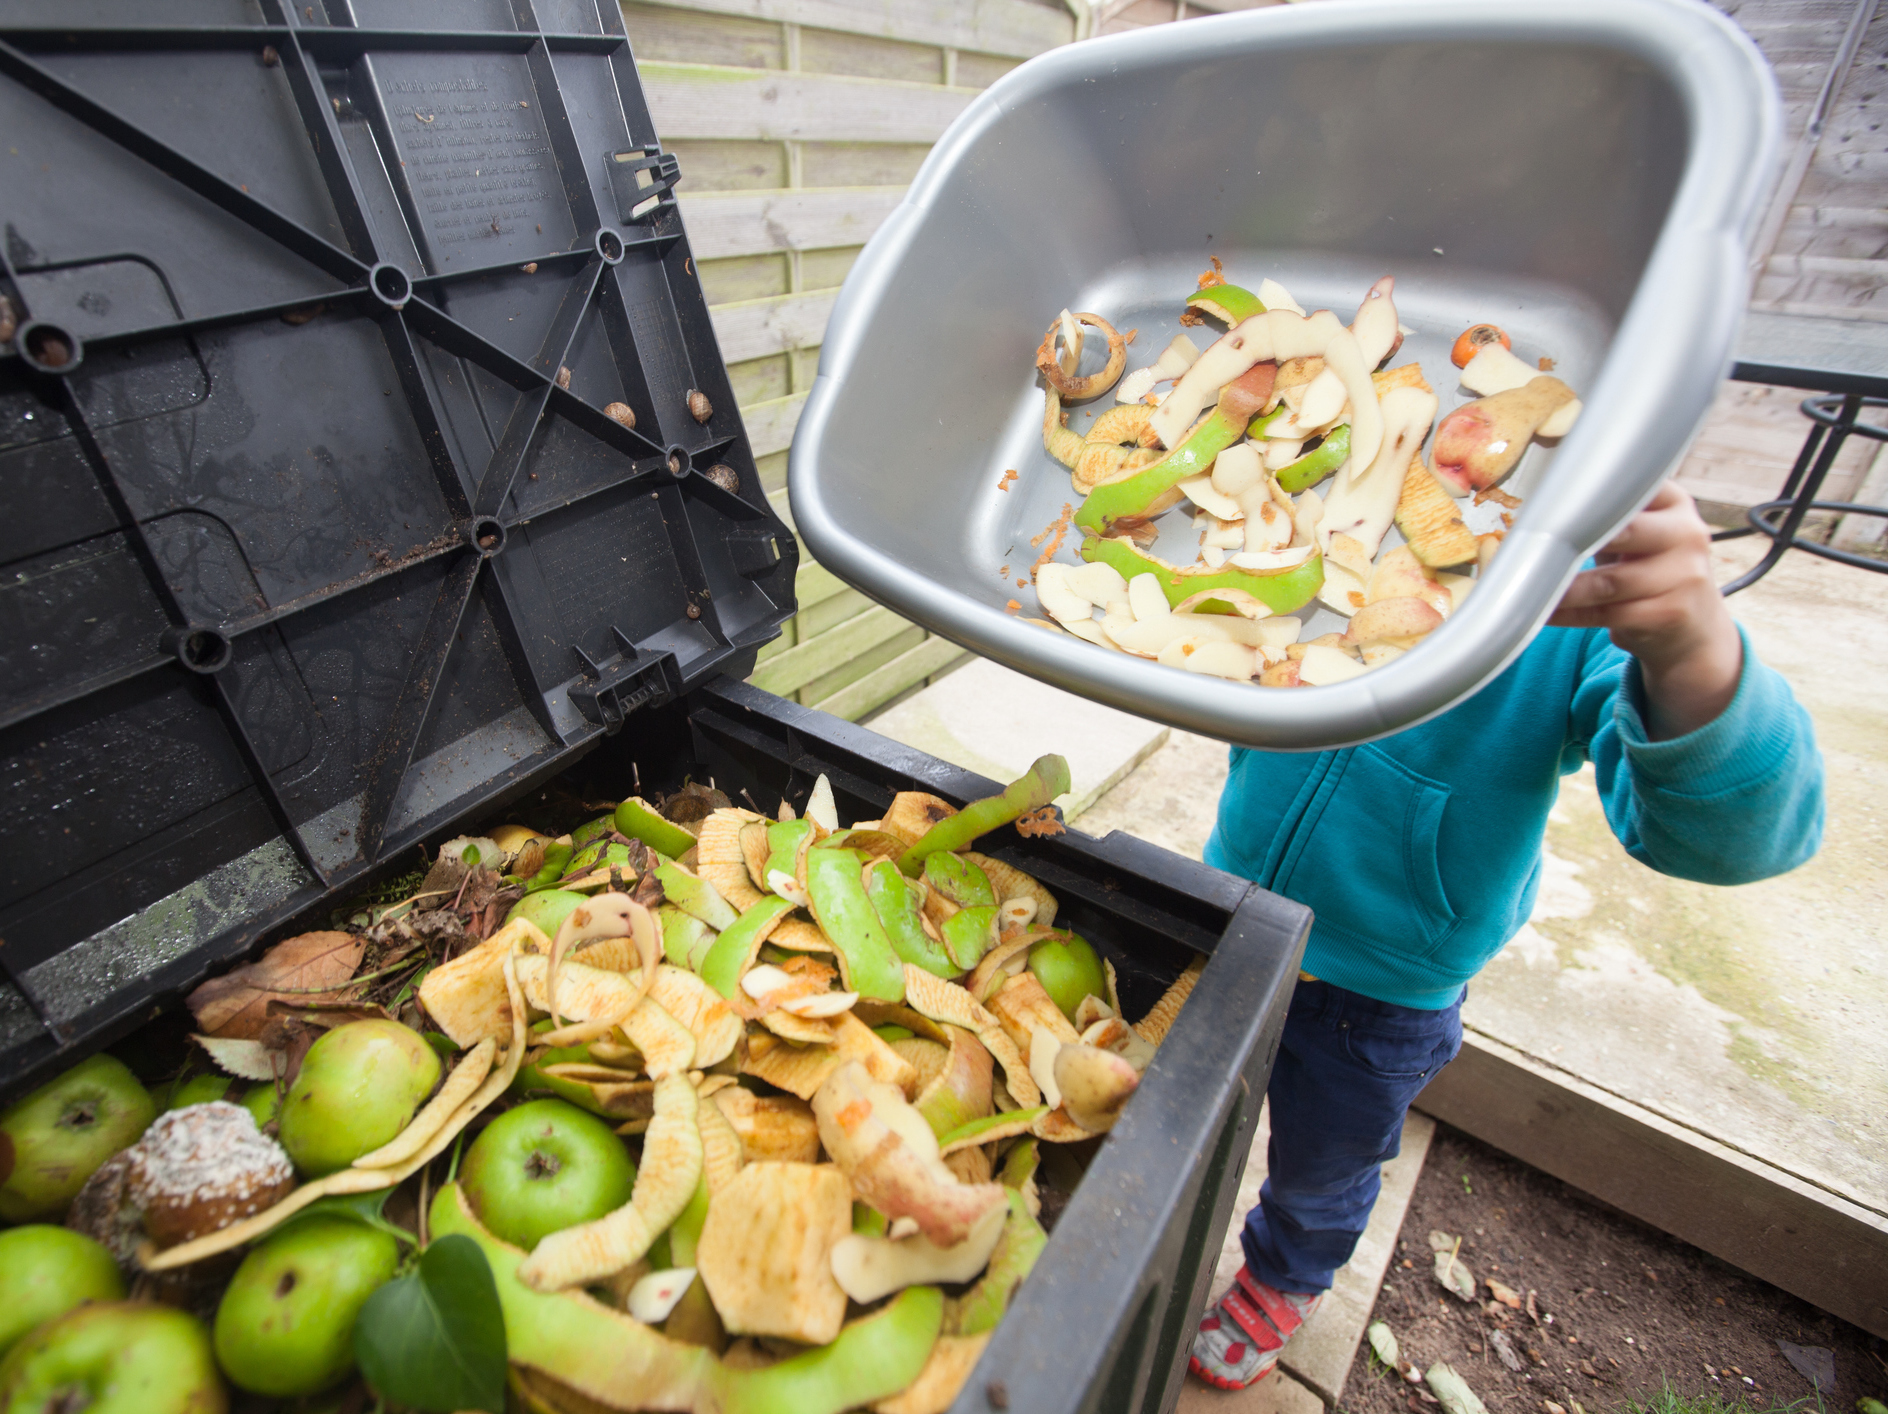 Composting food scraps is one way to reduce food waste, but preventing excess food in the first place is better, says the EPA. (paul mansfield photography/Getty Images)